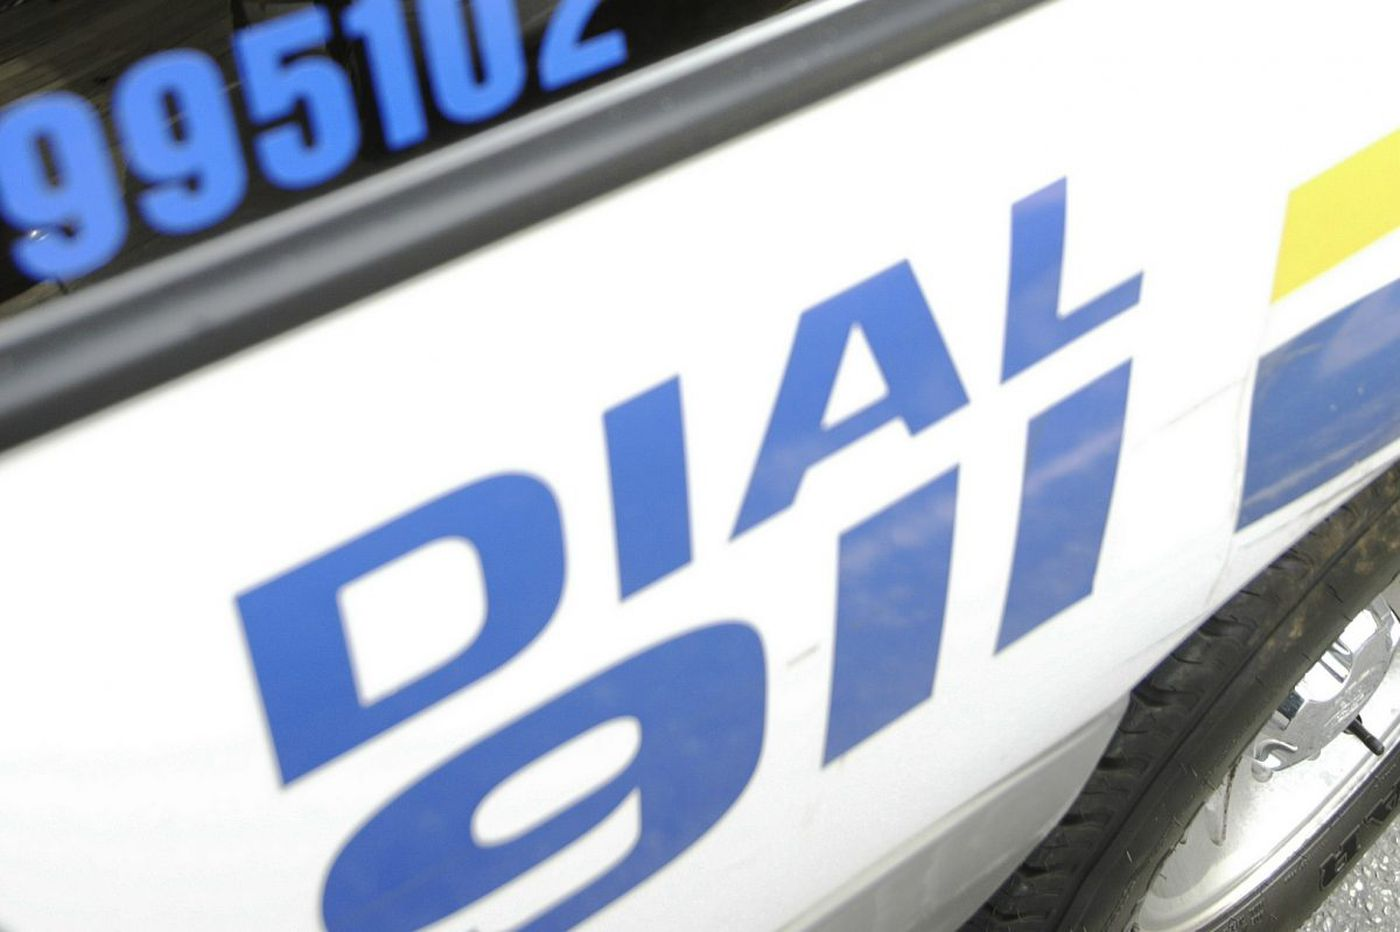 Construction worker dies after fall in Old City